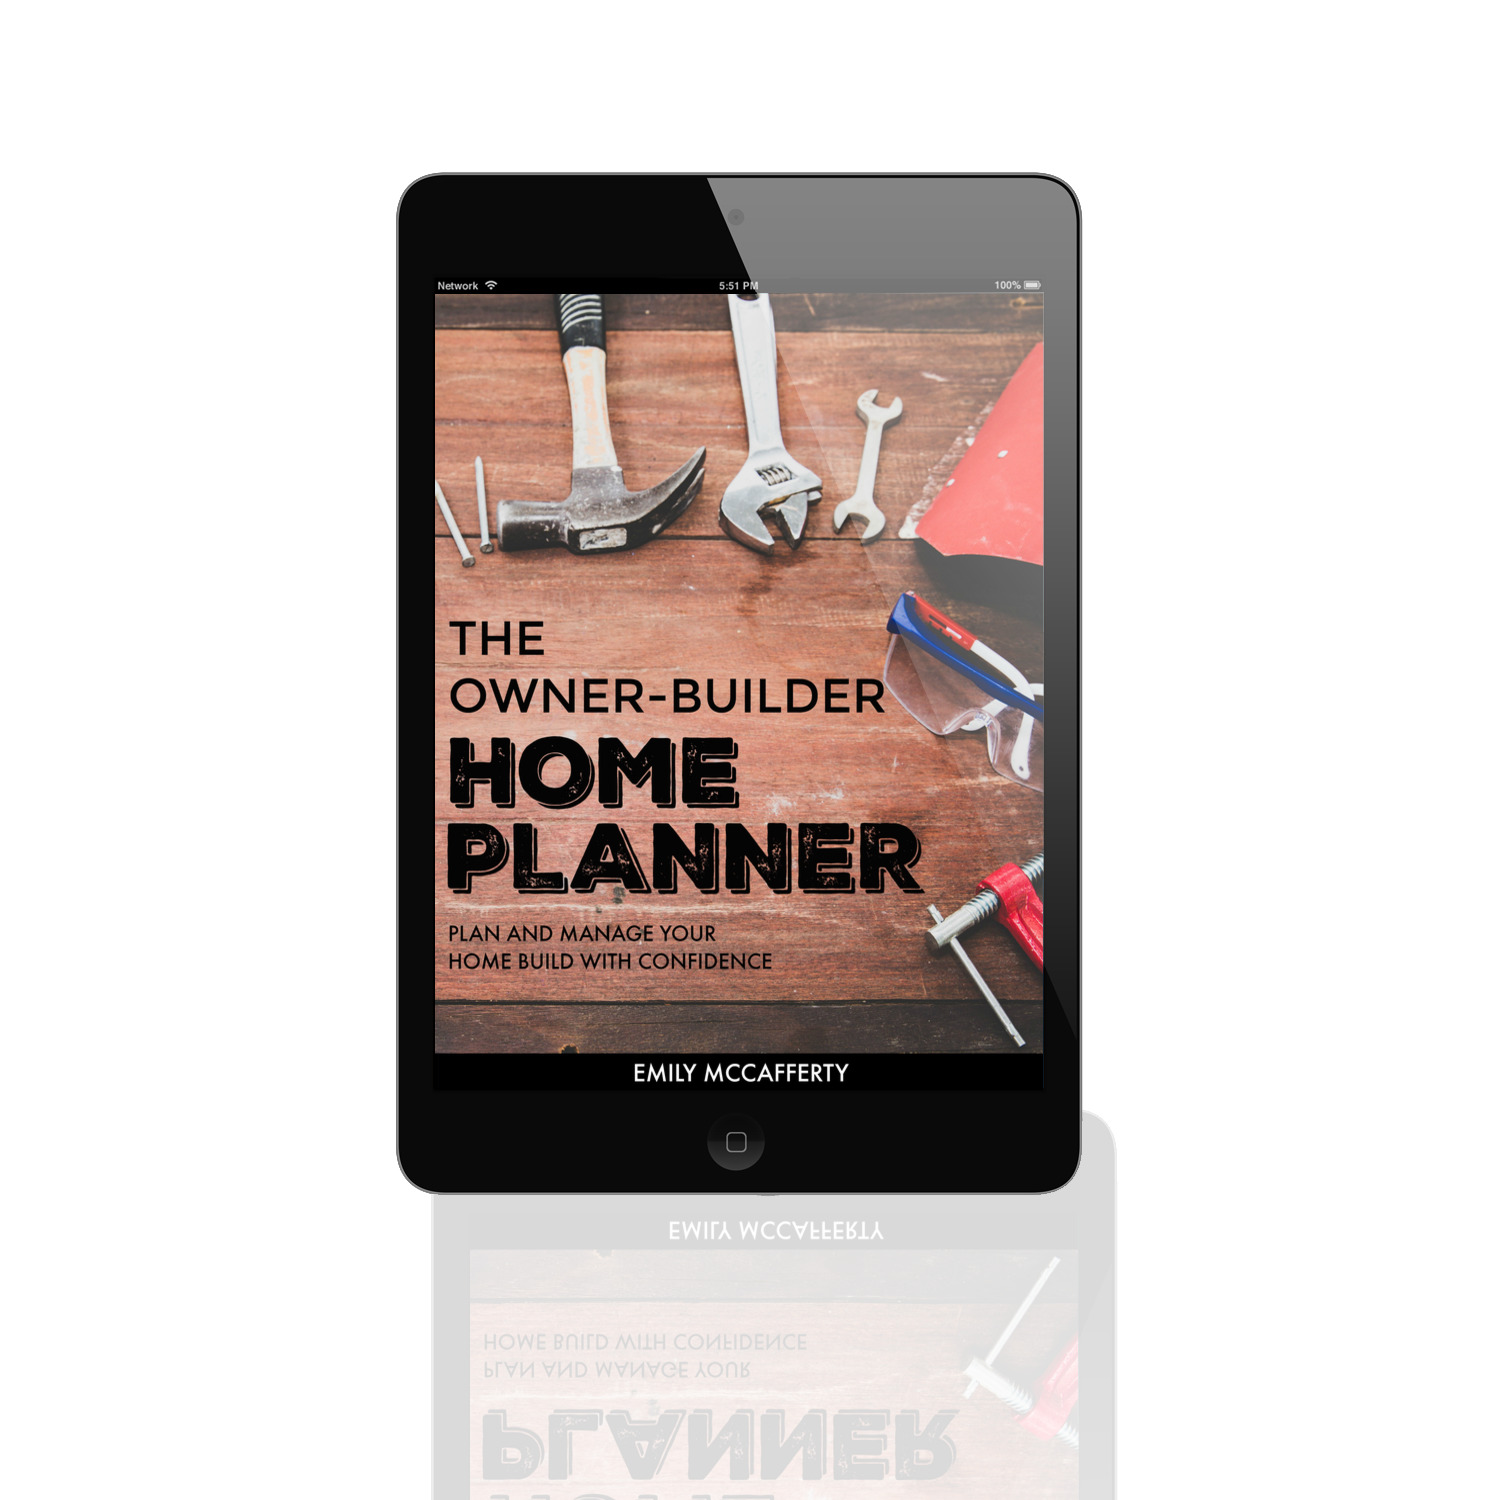 The complete guide to help owner-builders know how to plan, manage their money, and build a home from start to finish without losing their minds.